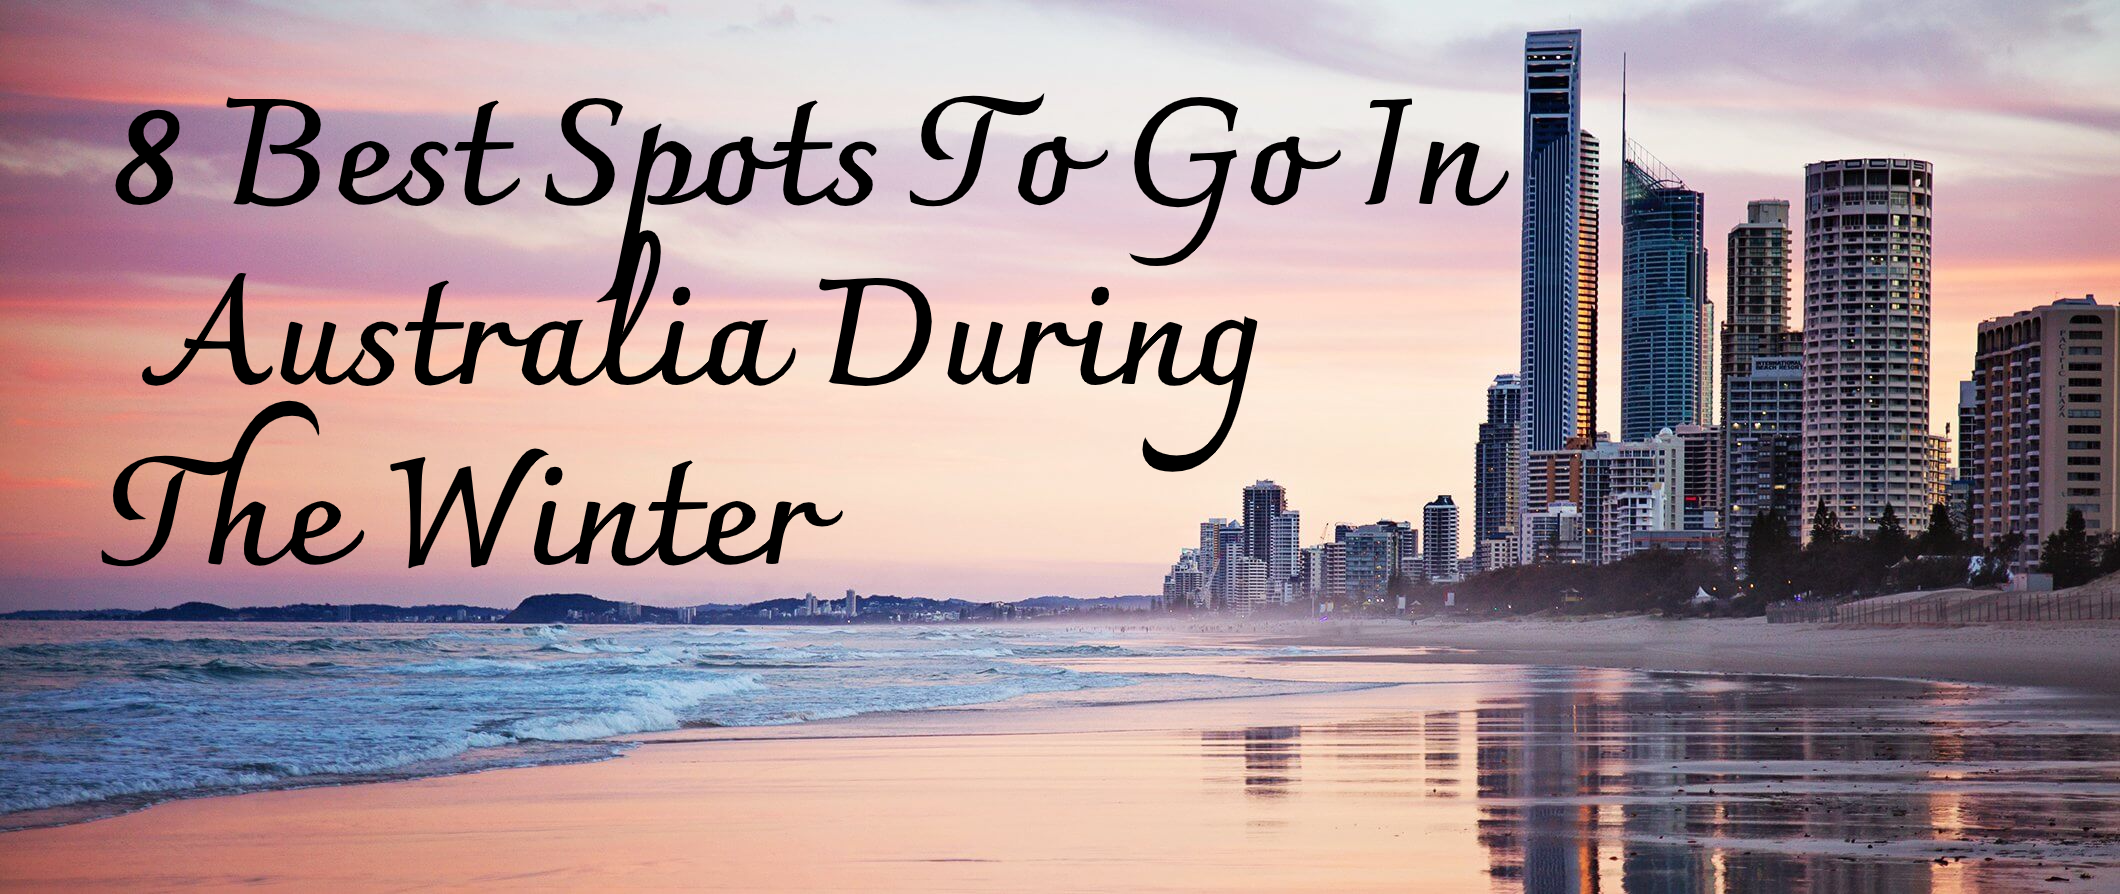 8 Best Spots To Go In Australia During The Winter